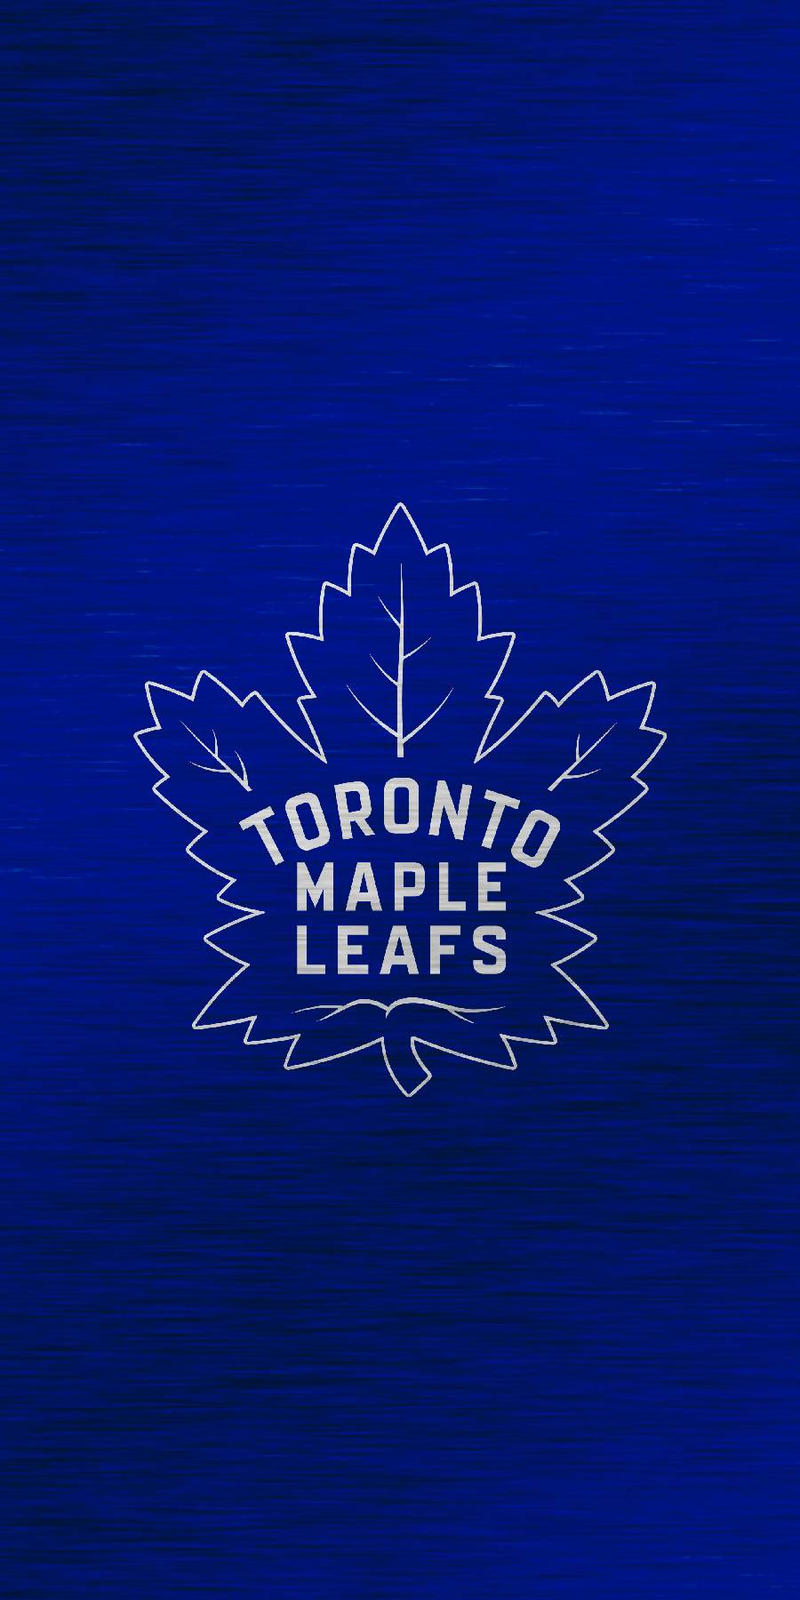 Toronto Maple Leafs Wallpaper 18 9 By Captainlocksley On Deviantart